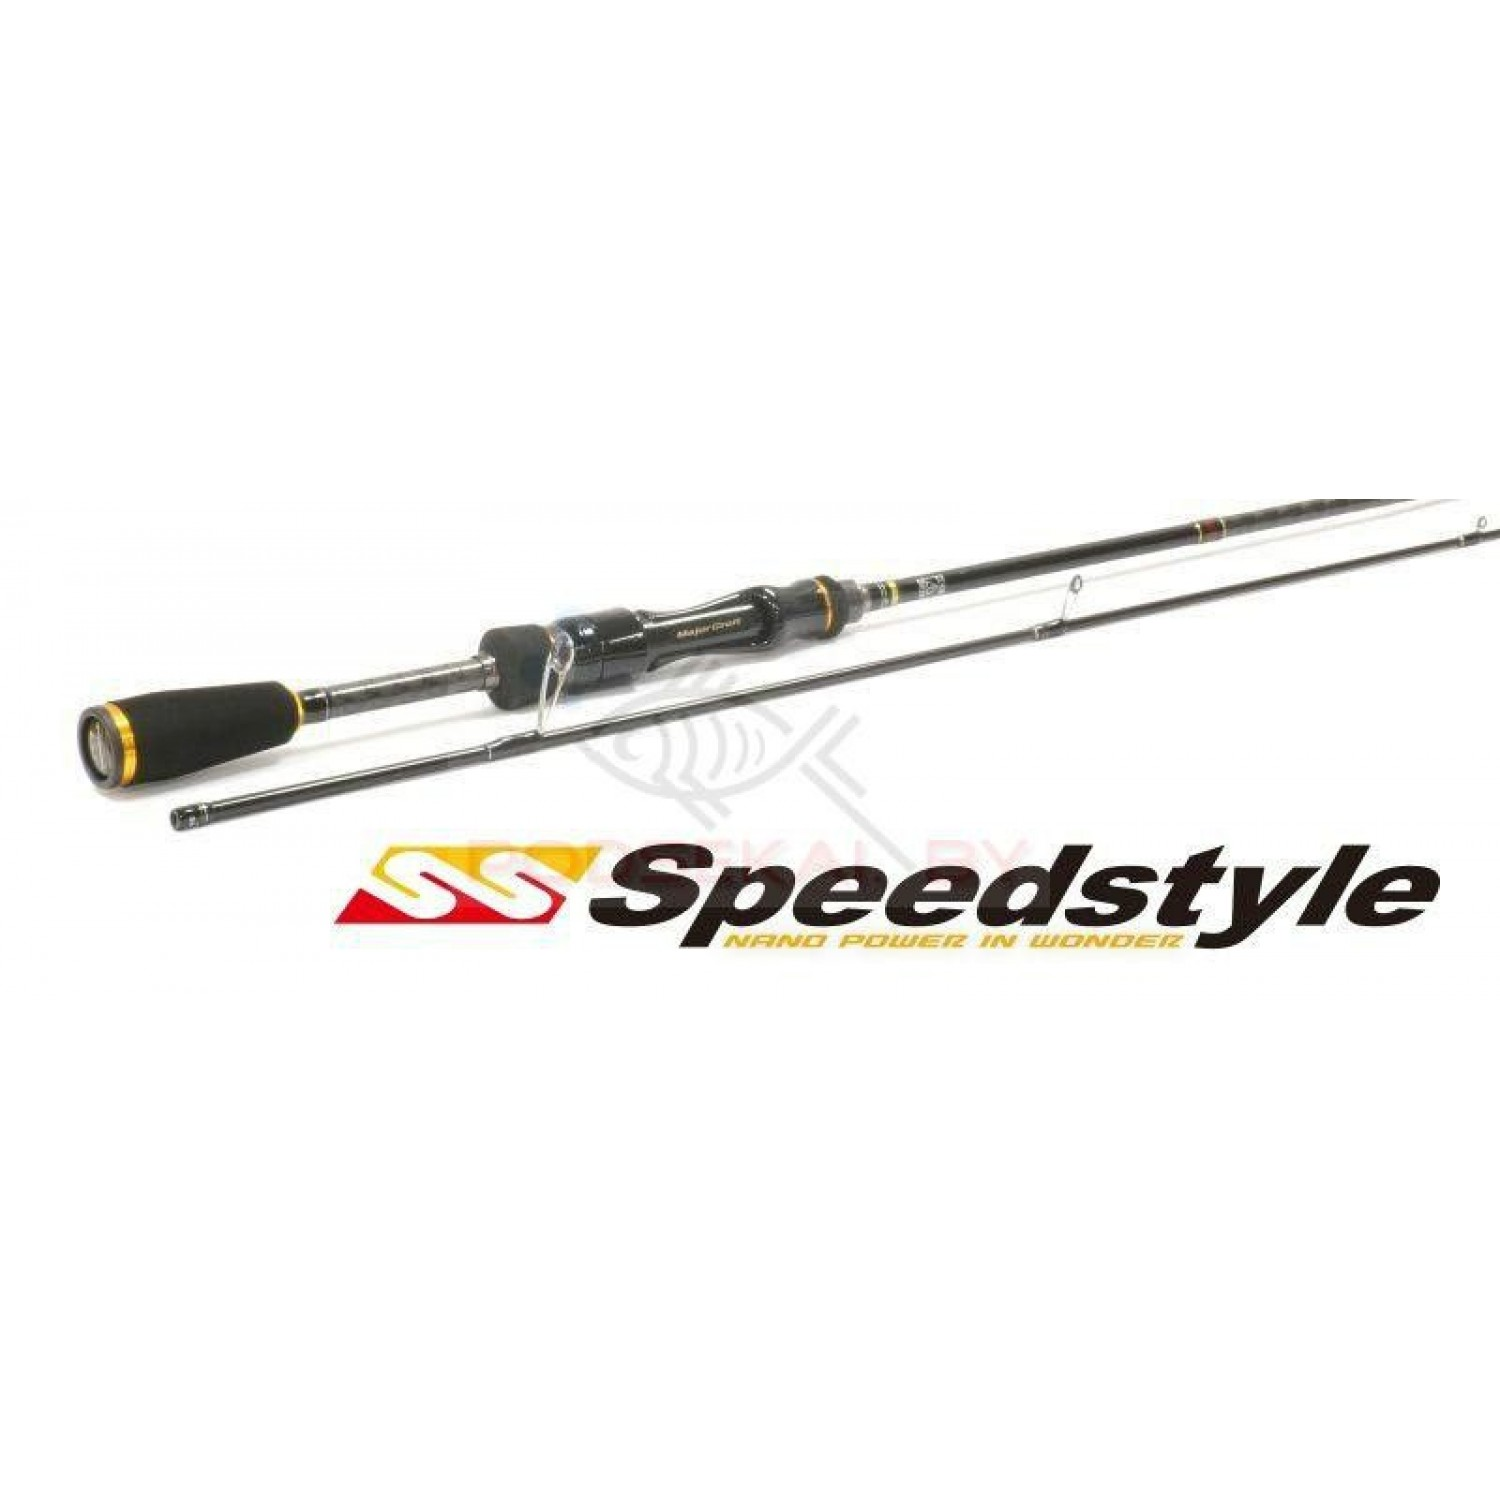 Спиннинг MAJOR CRAFT Speedstyle SSS-762ML 2,30м. 1/8 - 3/8 oz